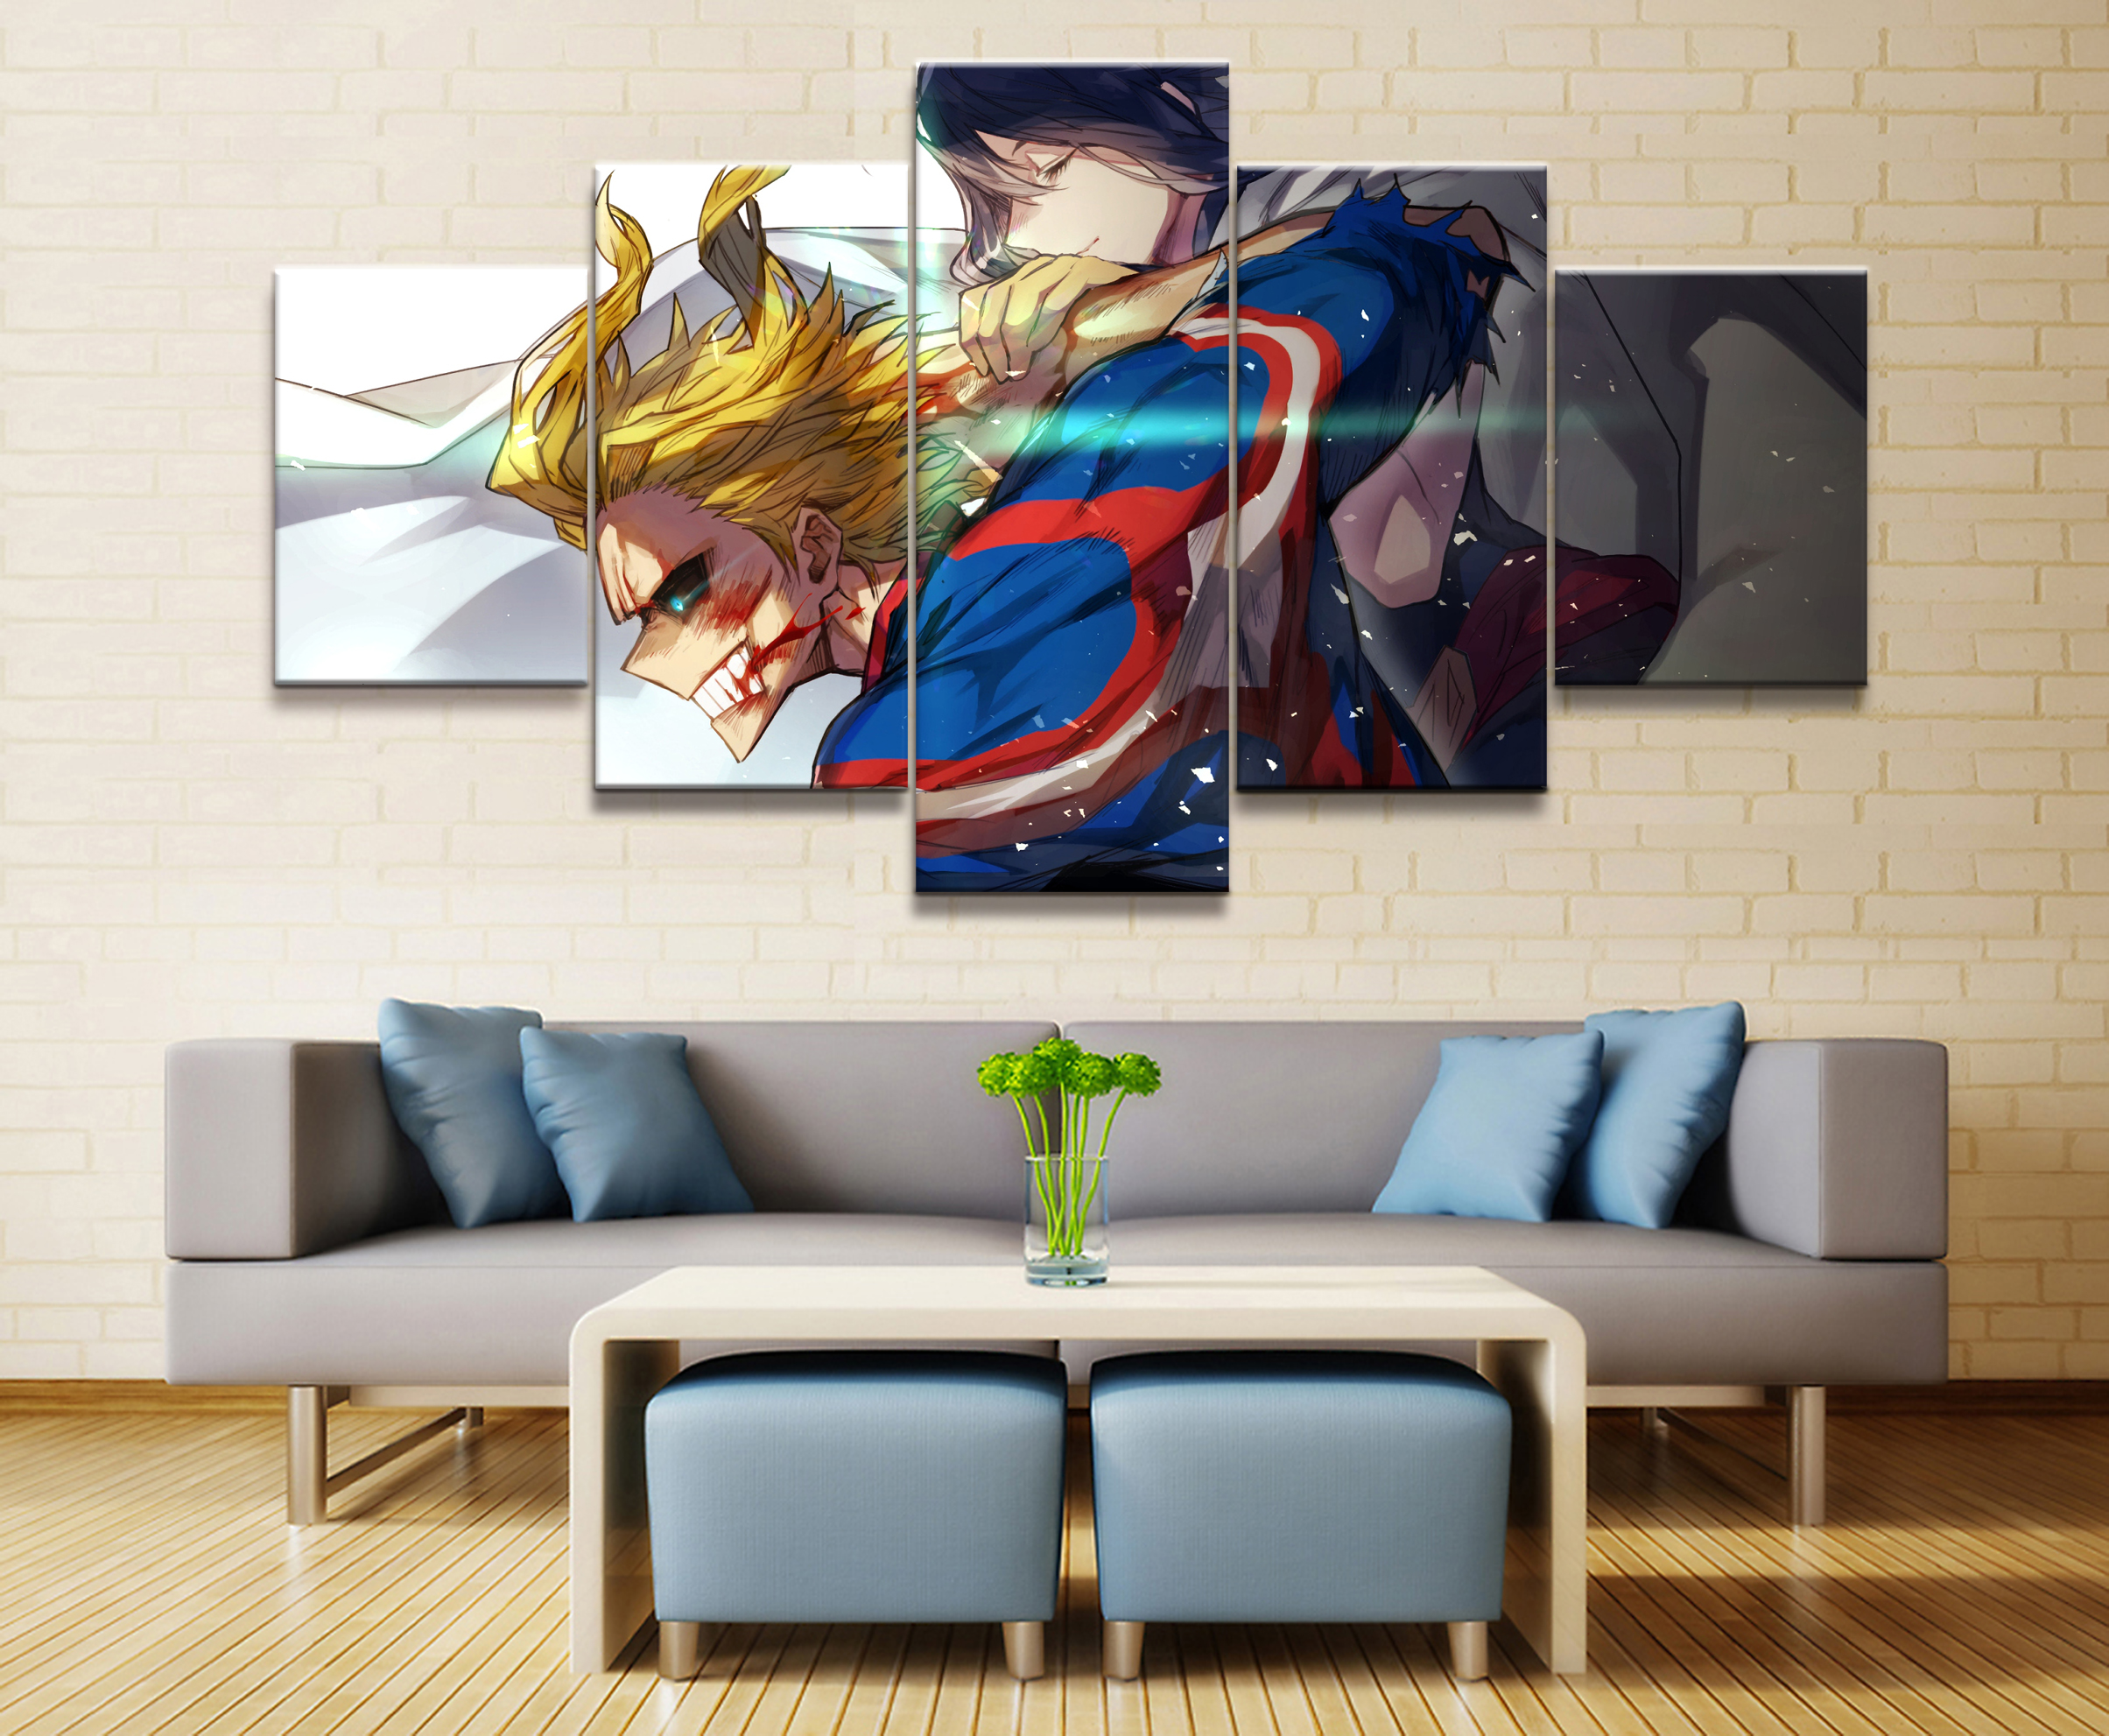 Wall Art Poster Painting Modular Pictures For Living Room Decorative Pictures Canvas Printed 5 Panel My Hero Academia Animation